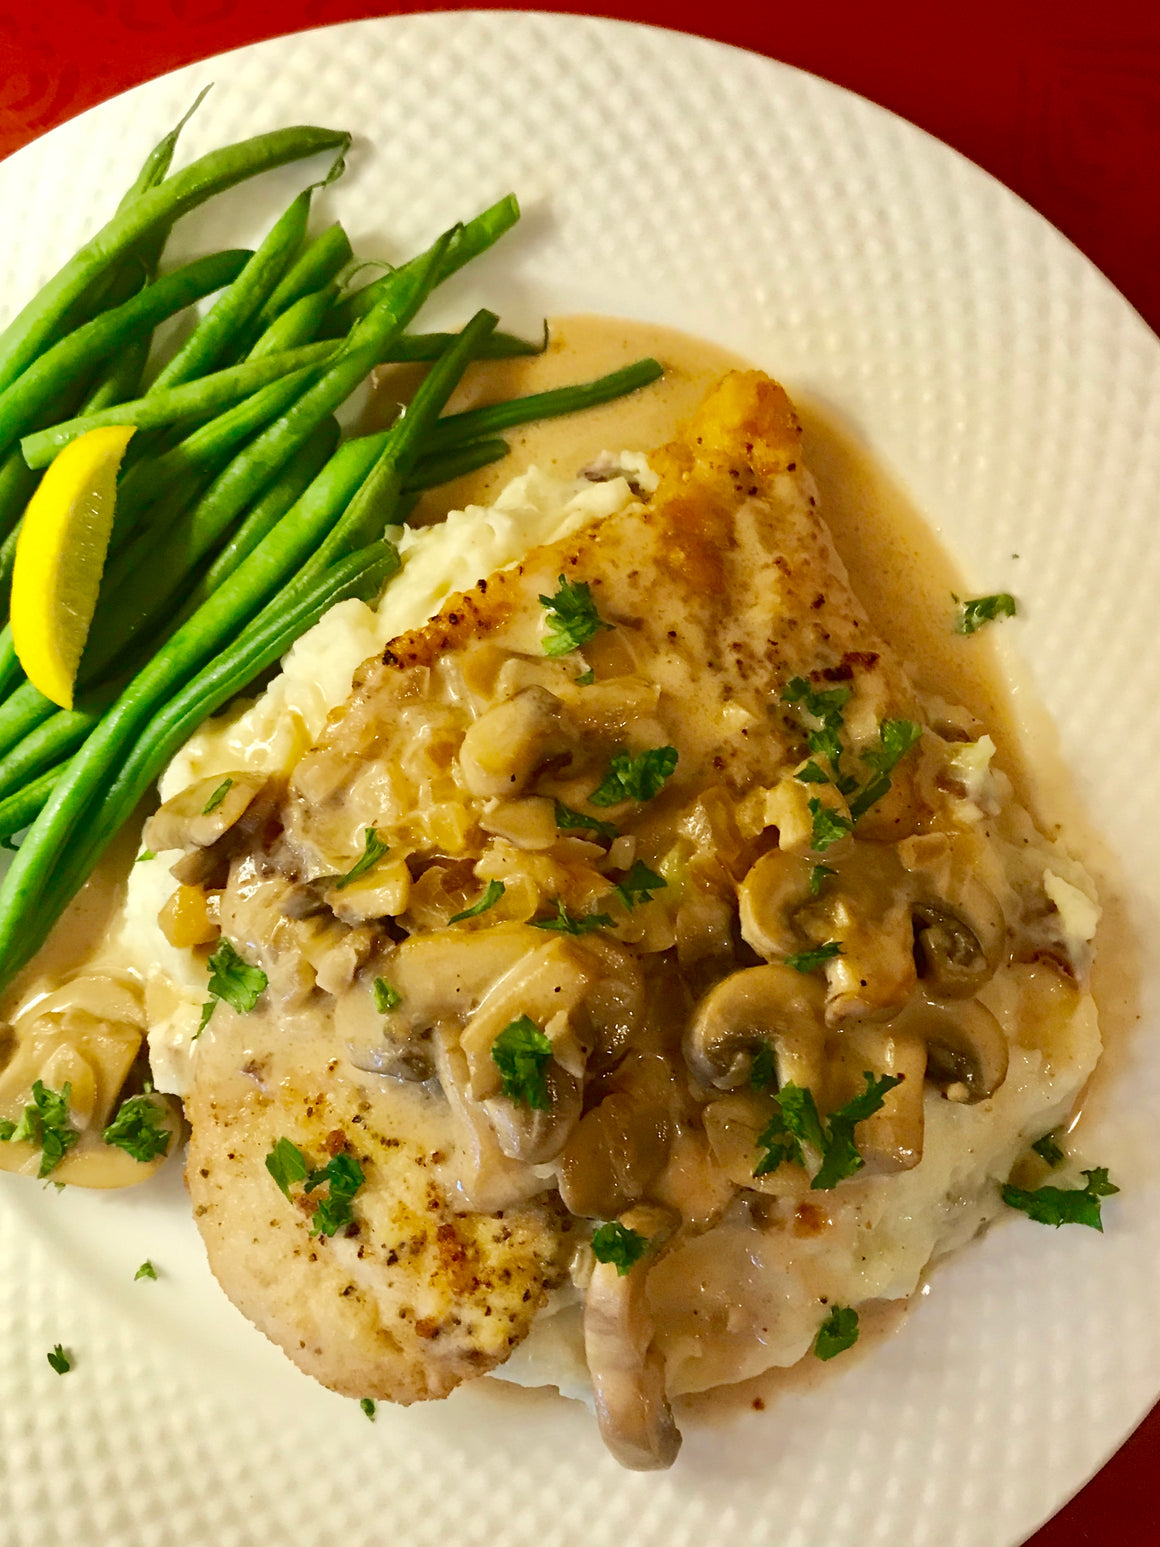 Monday, October 29th:  Chicken Marsala